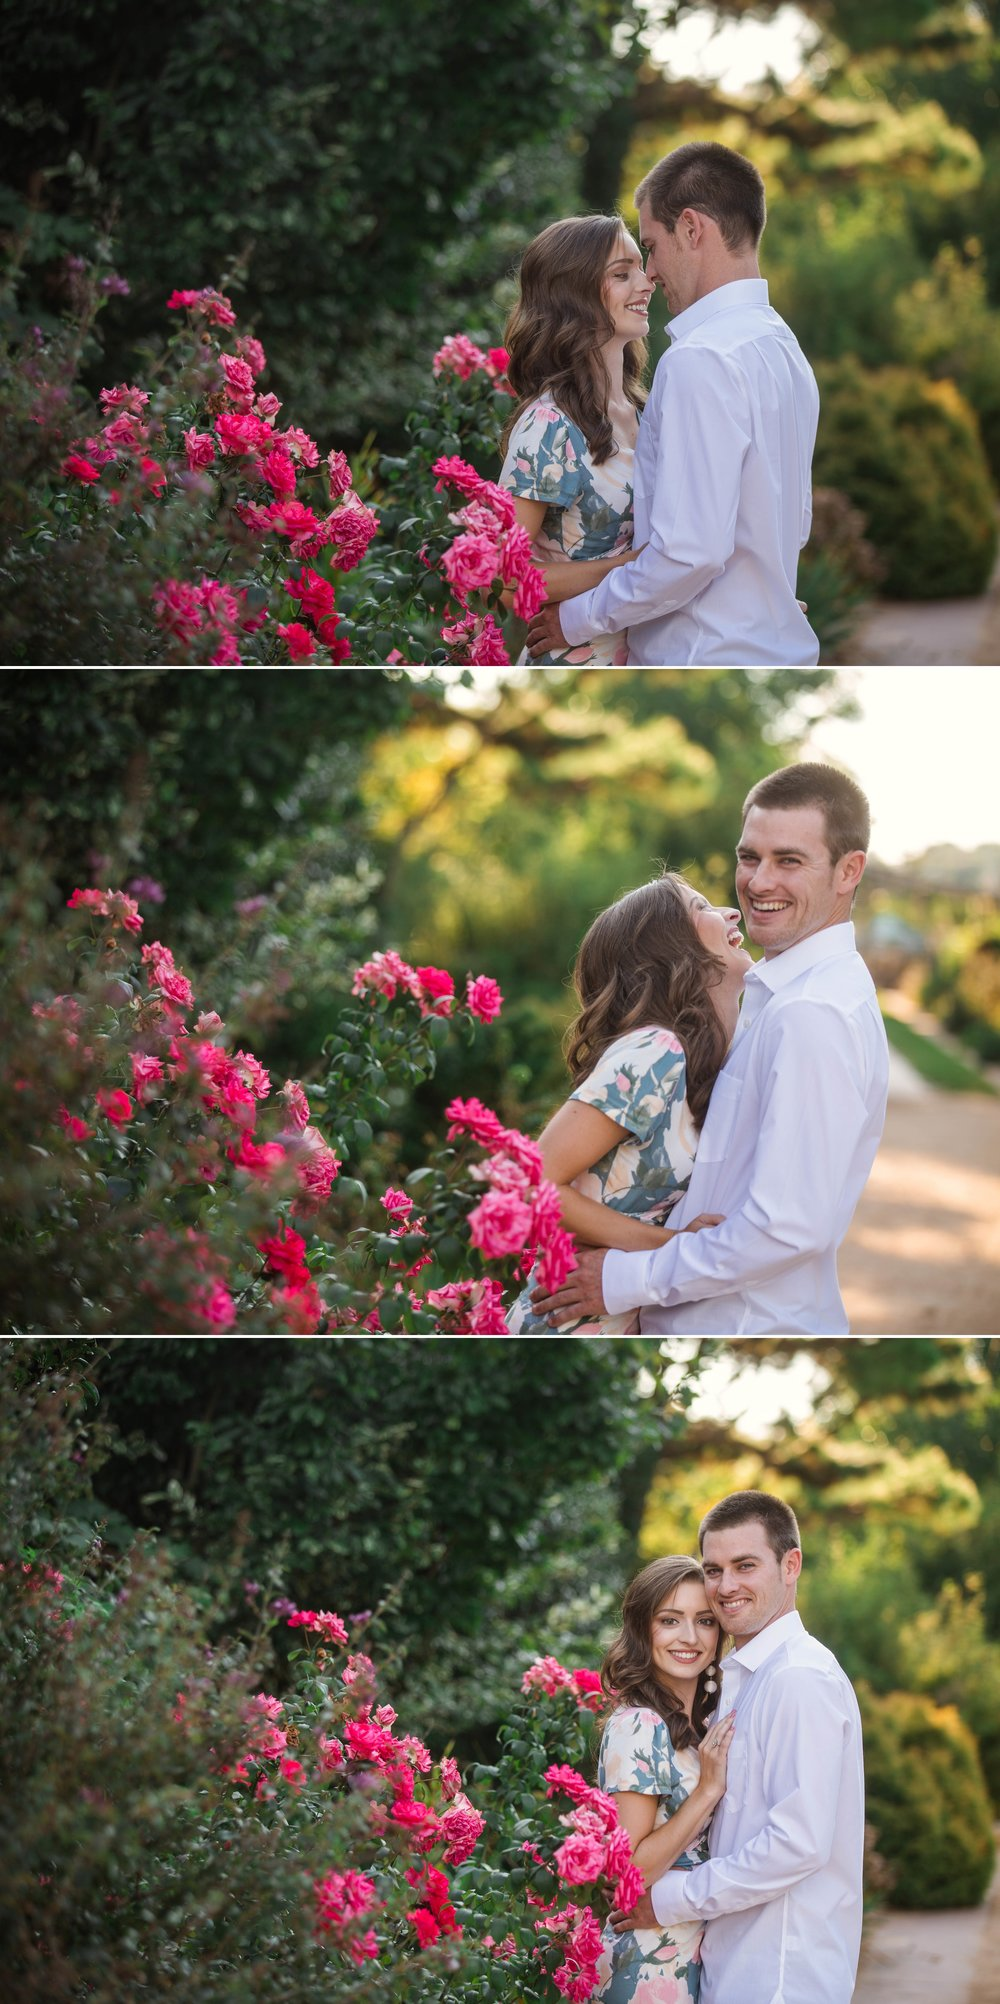 Paige + Tyler - Engagement Photography Session at the JC Raulston Arboretum - Raleigh Wedding Photographer 1.jpg